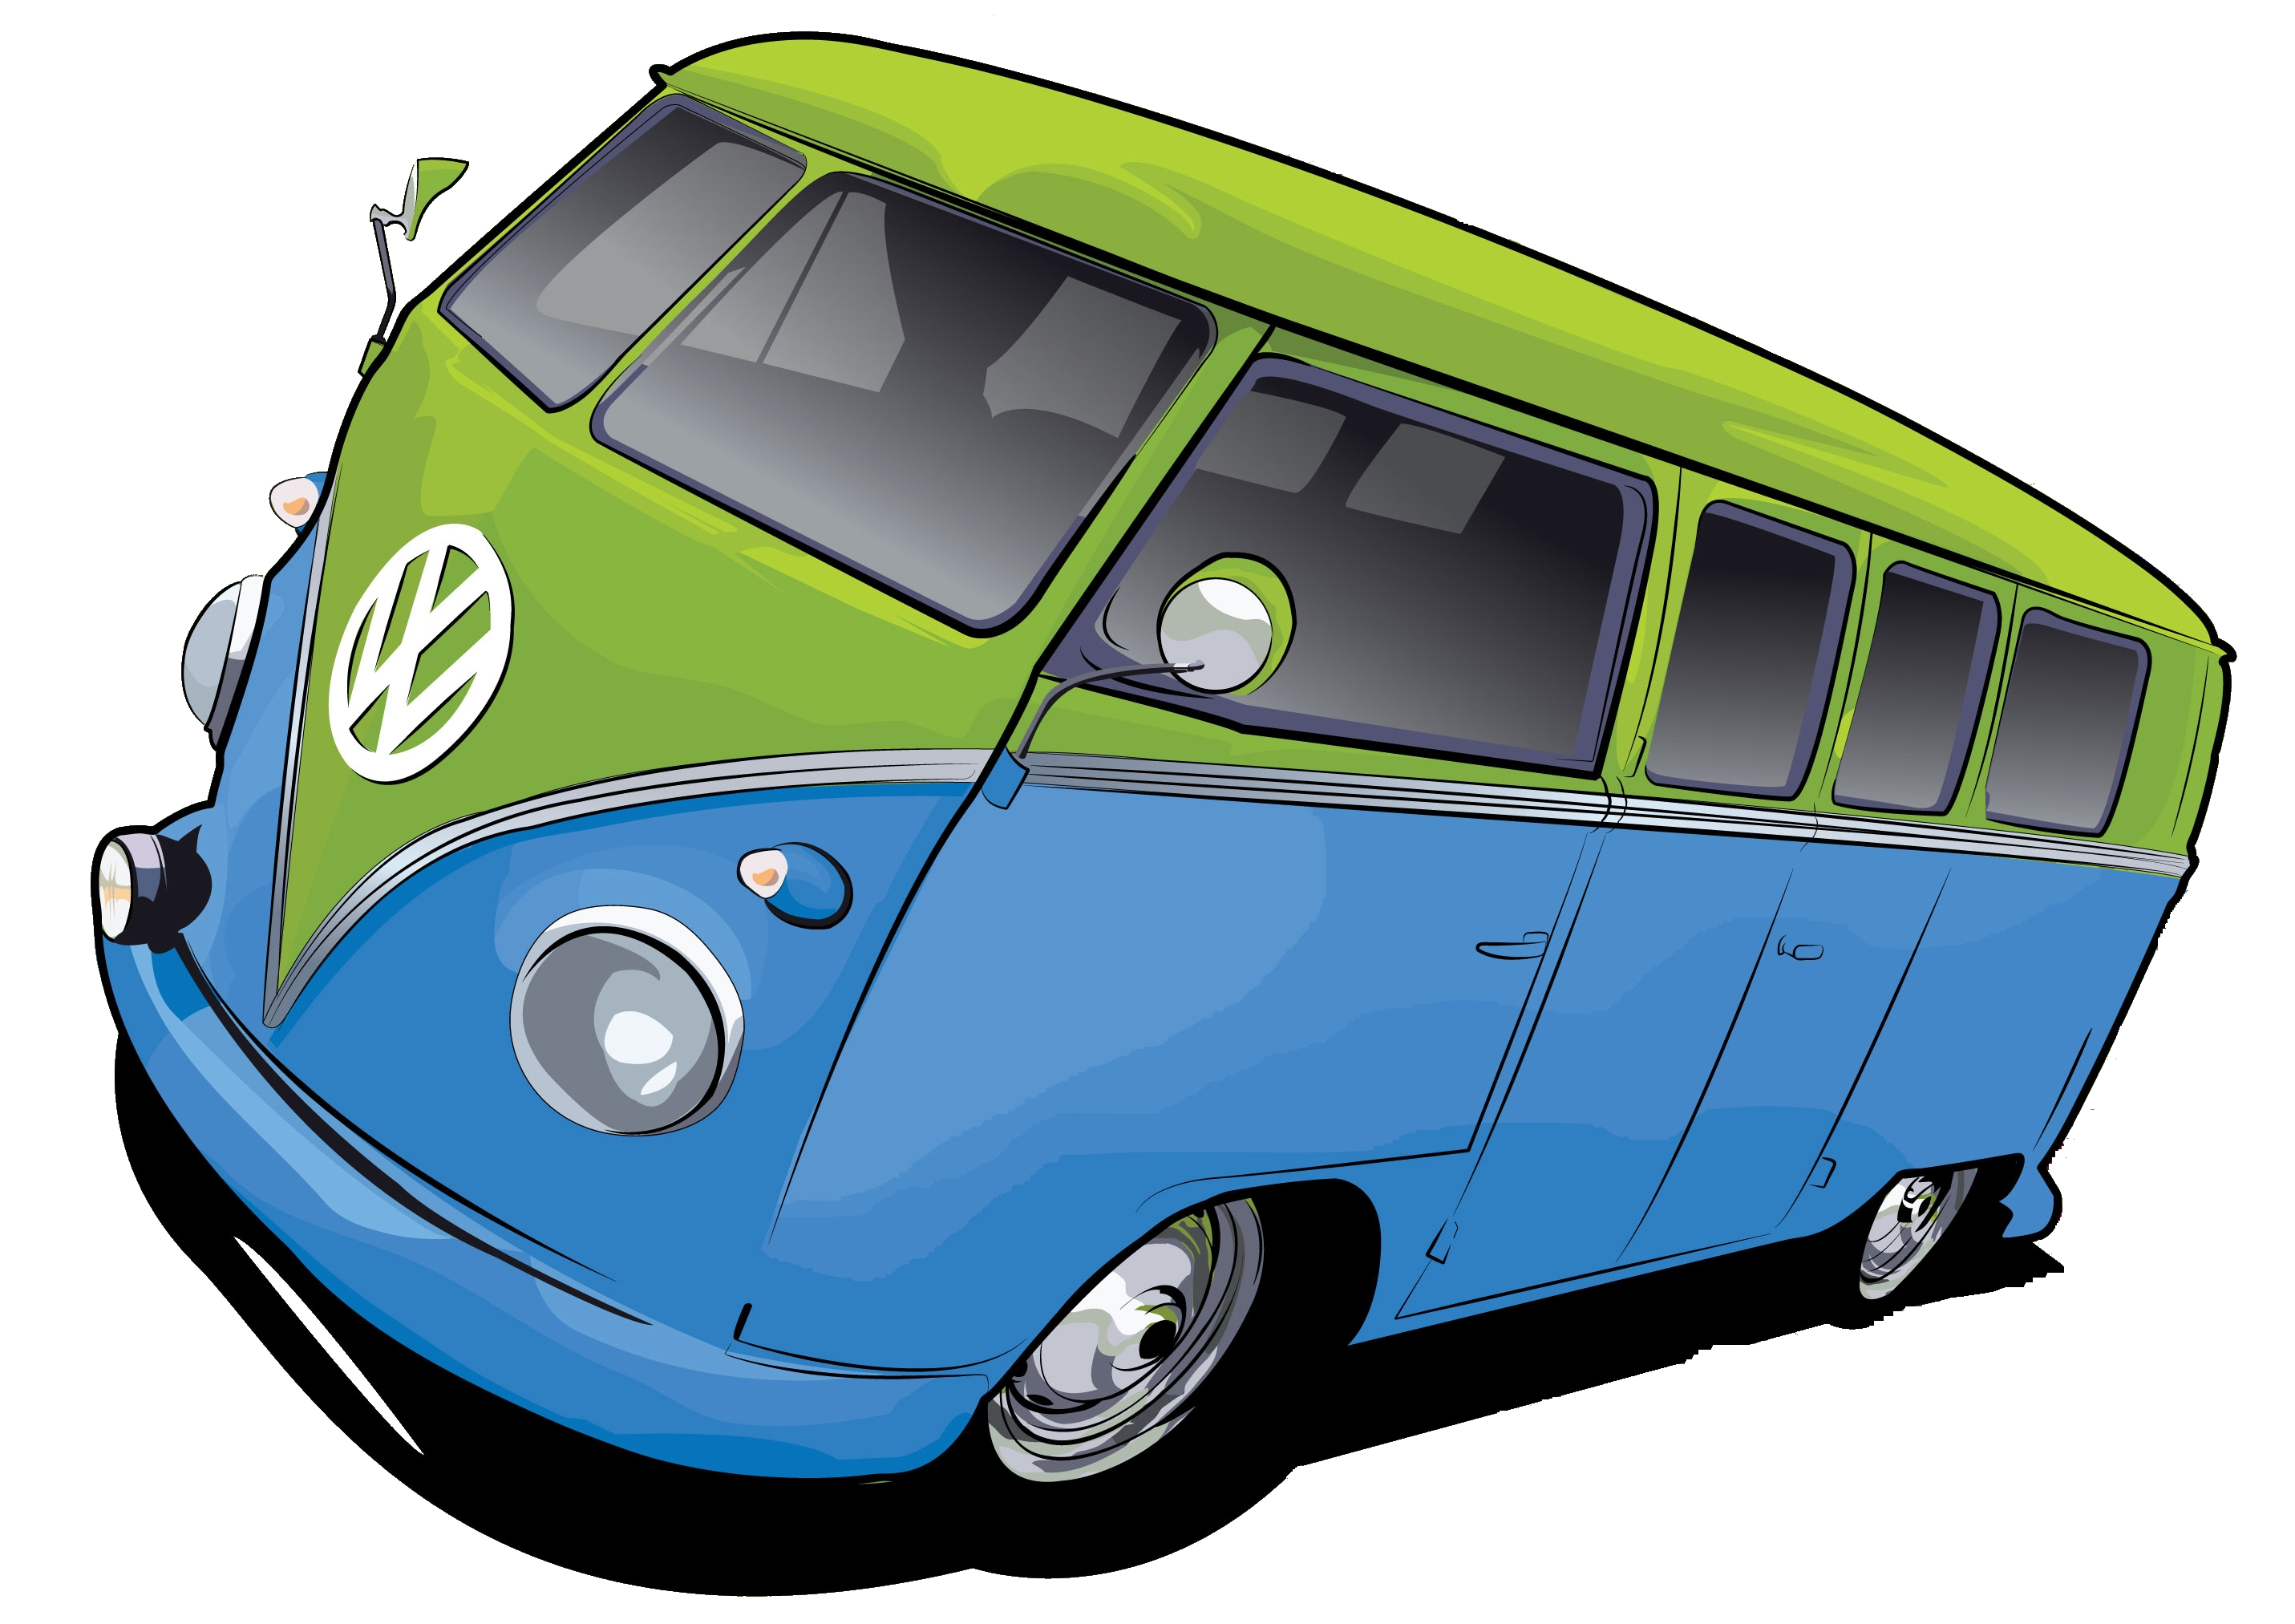 Vw camper cartoon clipart image library download Vw Bus Karikatur Group with 56+ items image library download